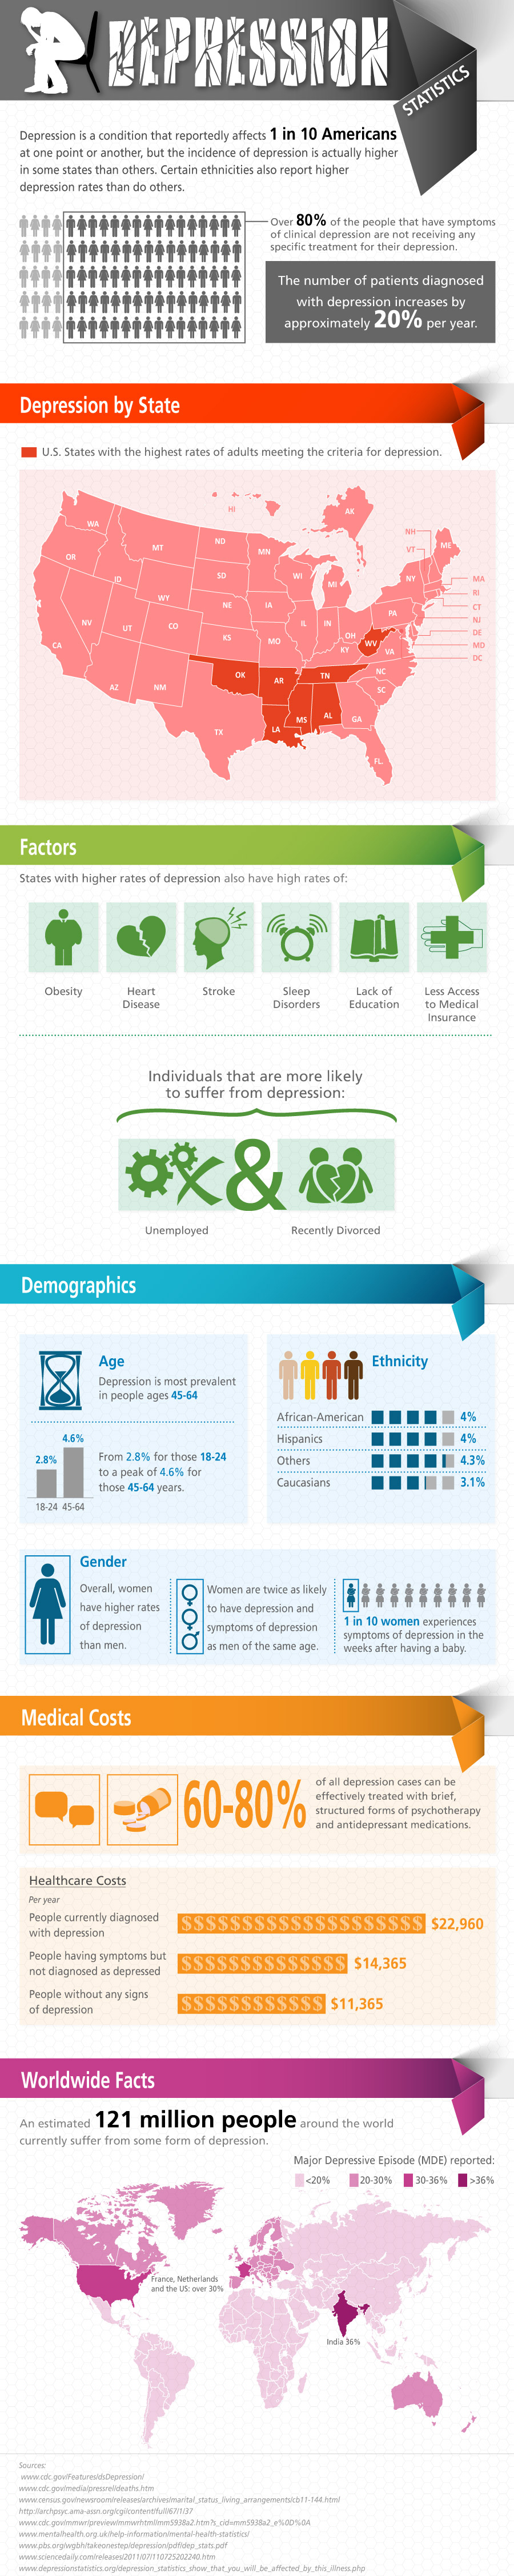 depression statistics unhappiness by the numbers infographic